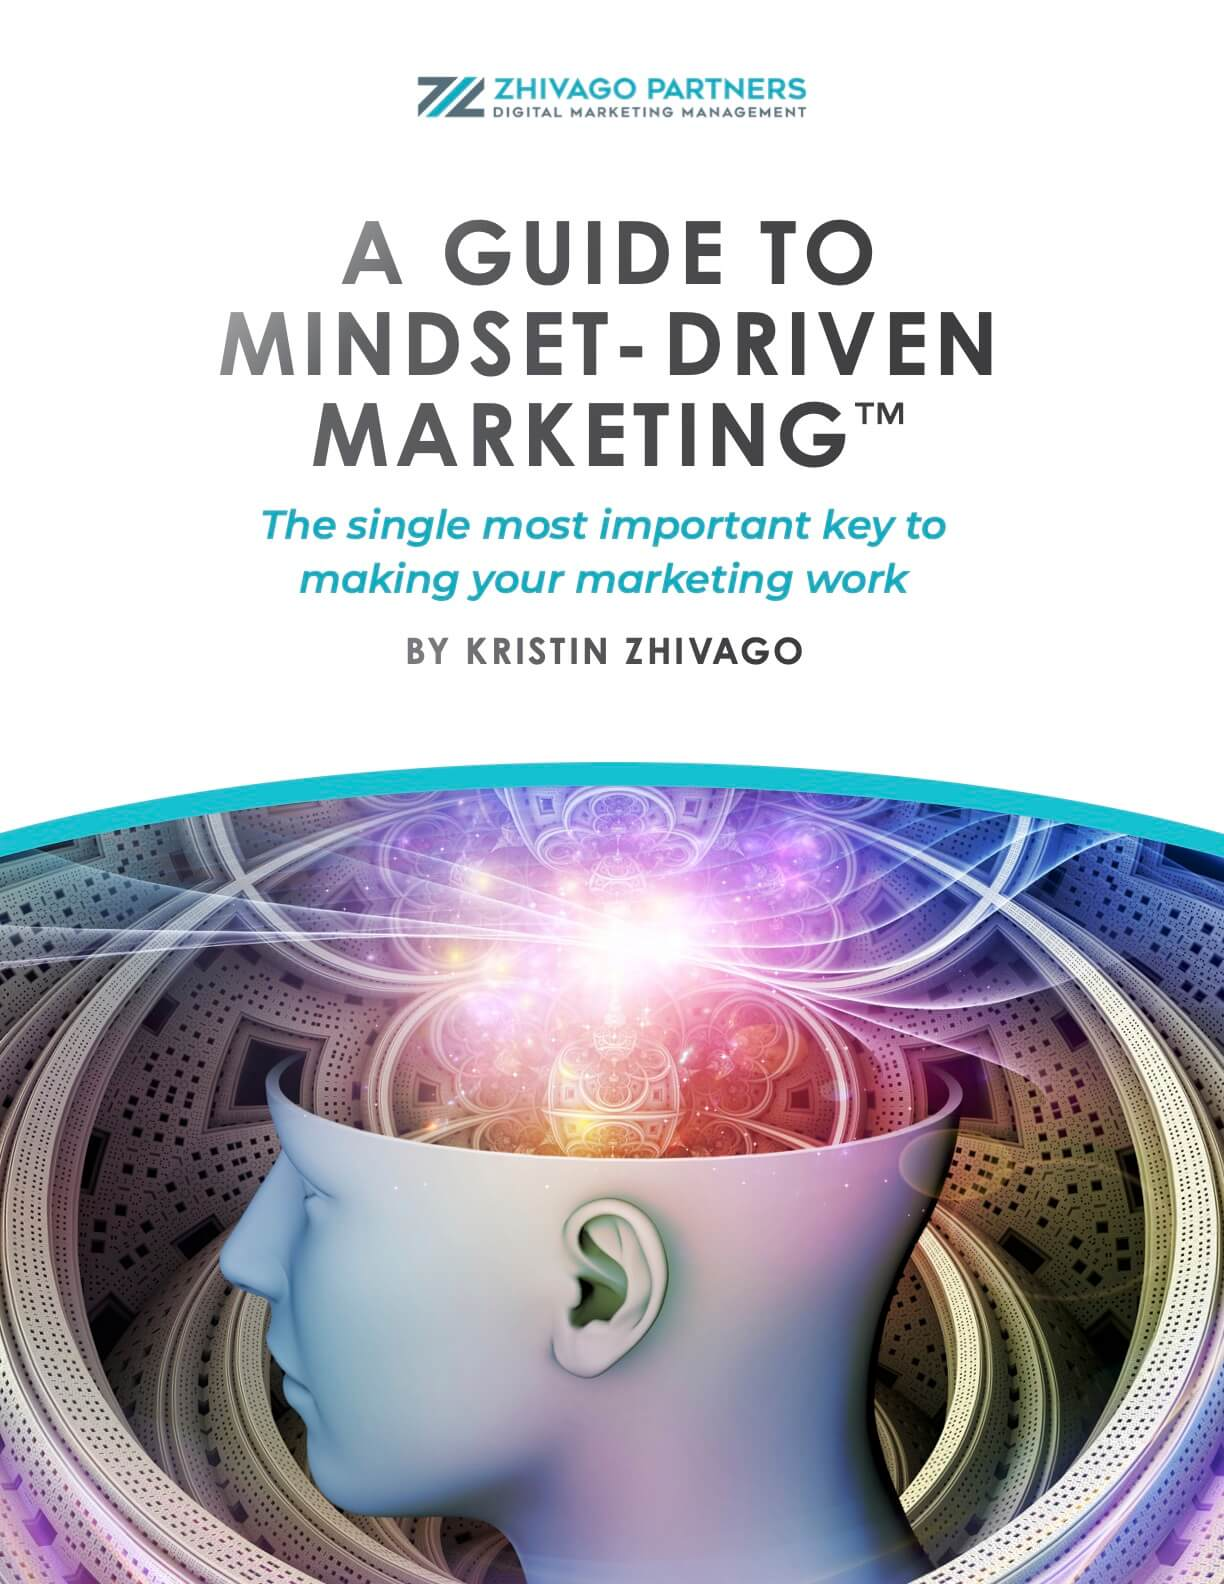 Front cover of A Guide to Mindset-Driven Marketing by Kristin Zhivago